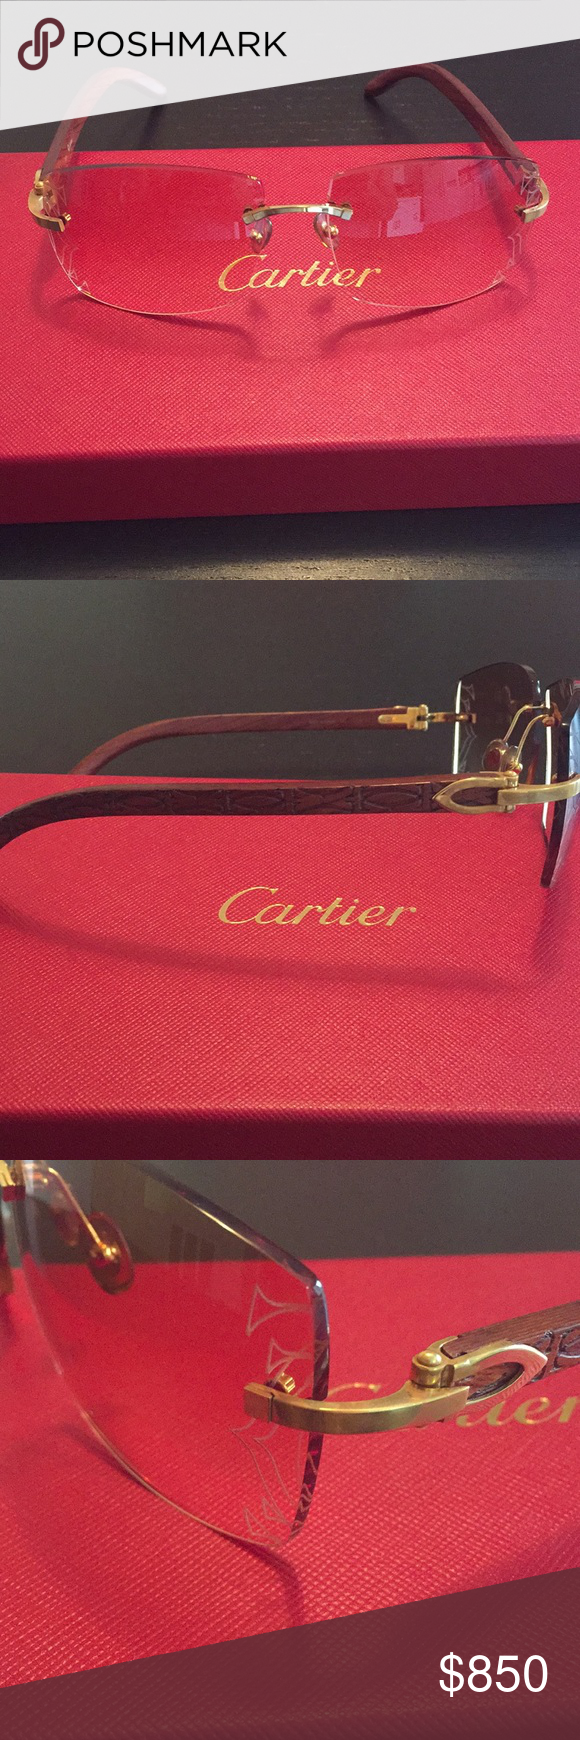 eeaa1eb9f2 Cartier C Decor Wood Frame Rimless Sunglasses (Authentic) Cartier C Decor  Sunglasses. Gold-Tone Hardware   Wood Frames. Comes with original Boxes